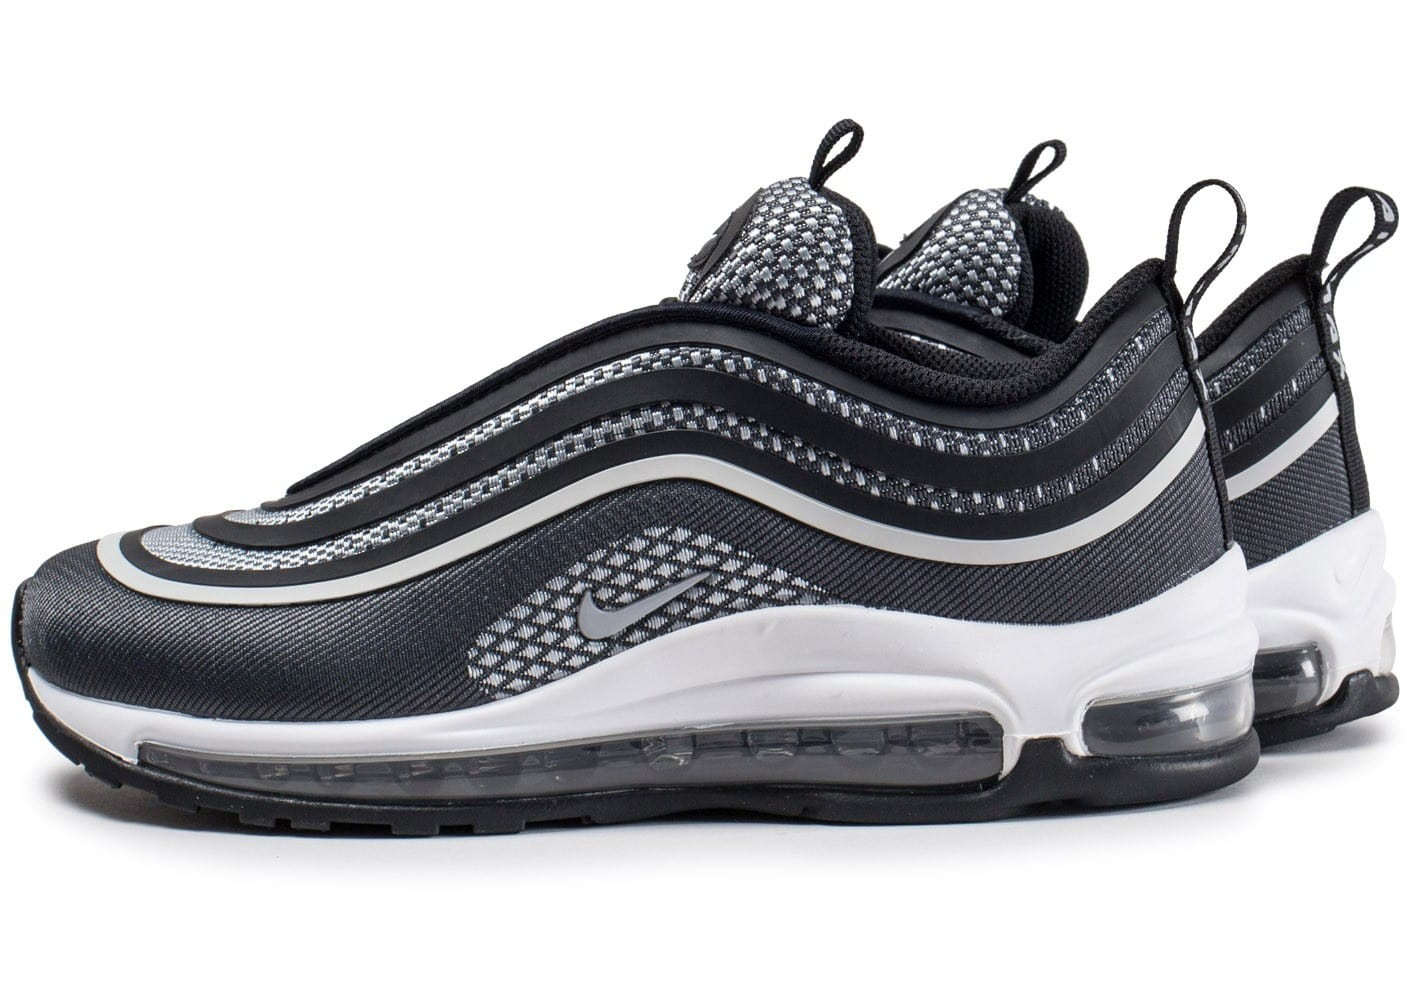 Nike Air Max|Nike Air Max 97 Femme Gris Nike Air Max 97 Ultra Lux W chaussures gris < Nyima